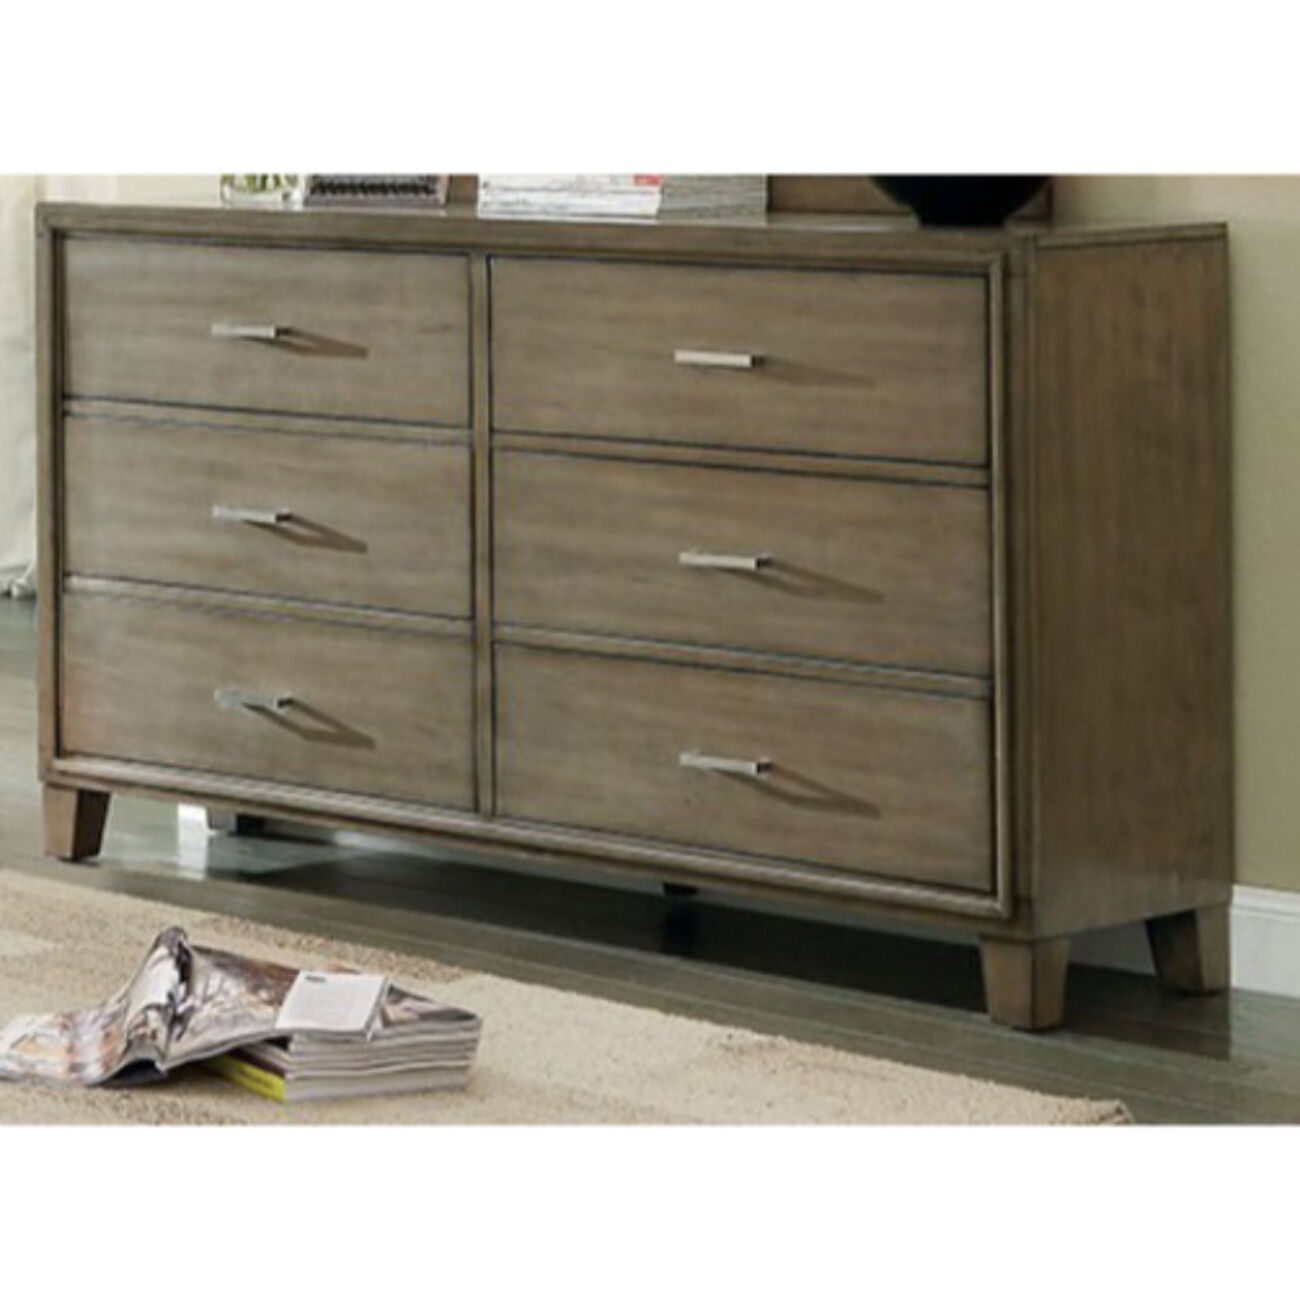 Subtle And Ultra-Fine Wooden Dresser In Contemporary Style, Gray